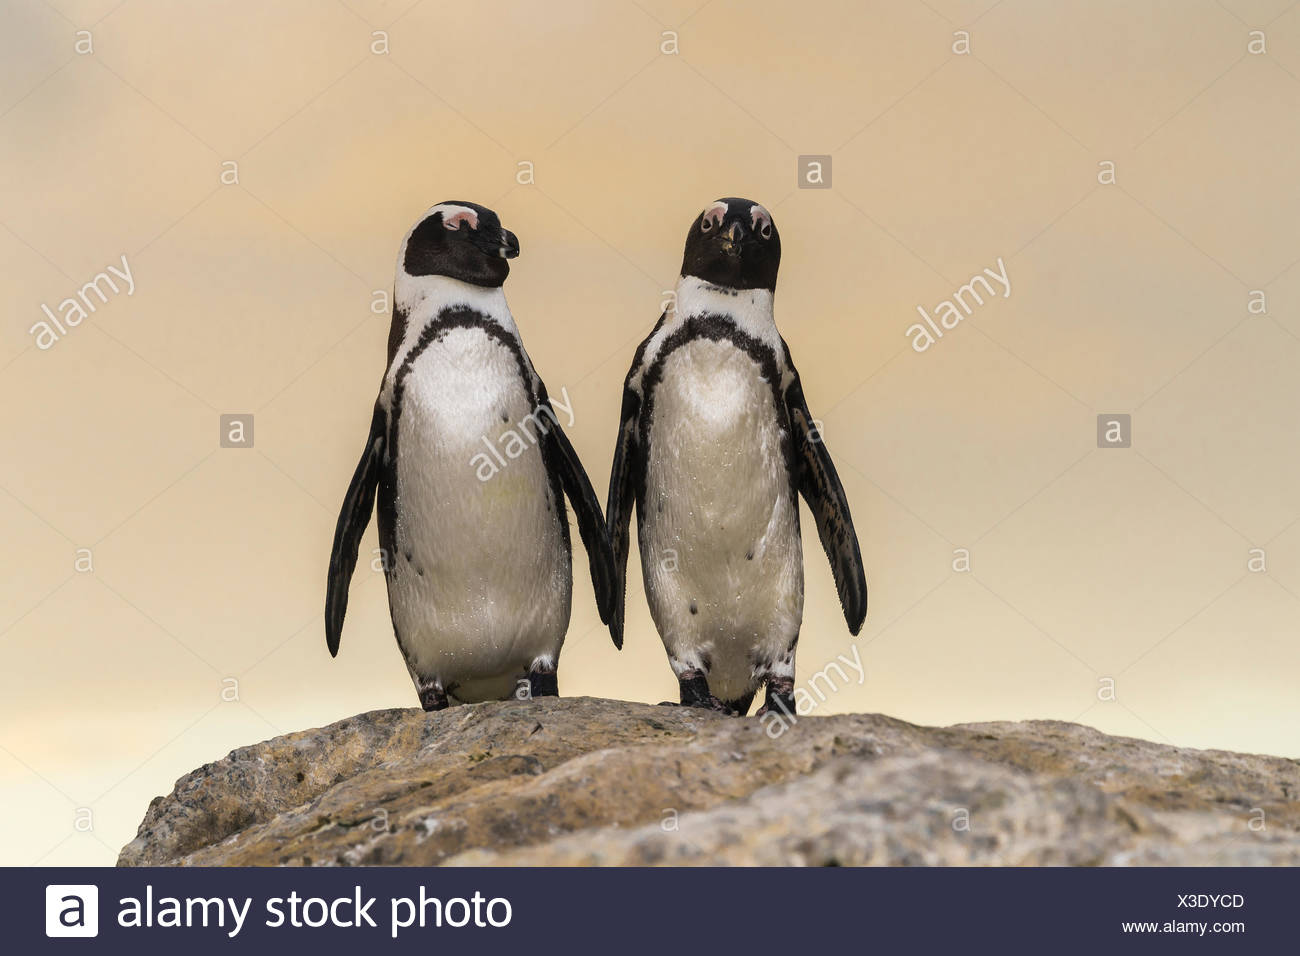 Two spectacle penguins (Spheniscus demersus), pair standing on rock, Bouldersbeach, Simonstown, Western Cape Province - Stock Image